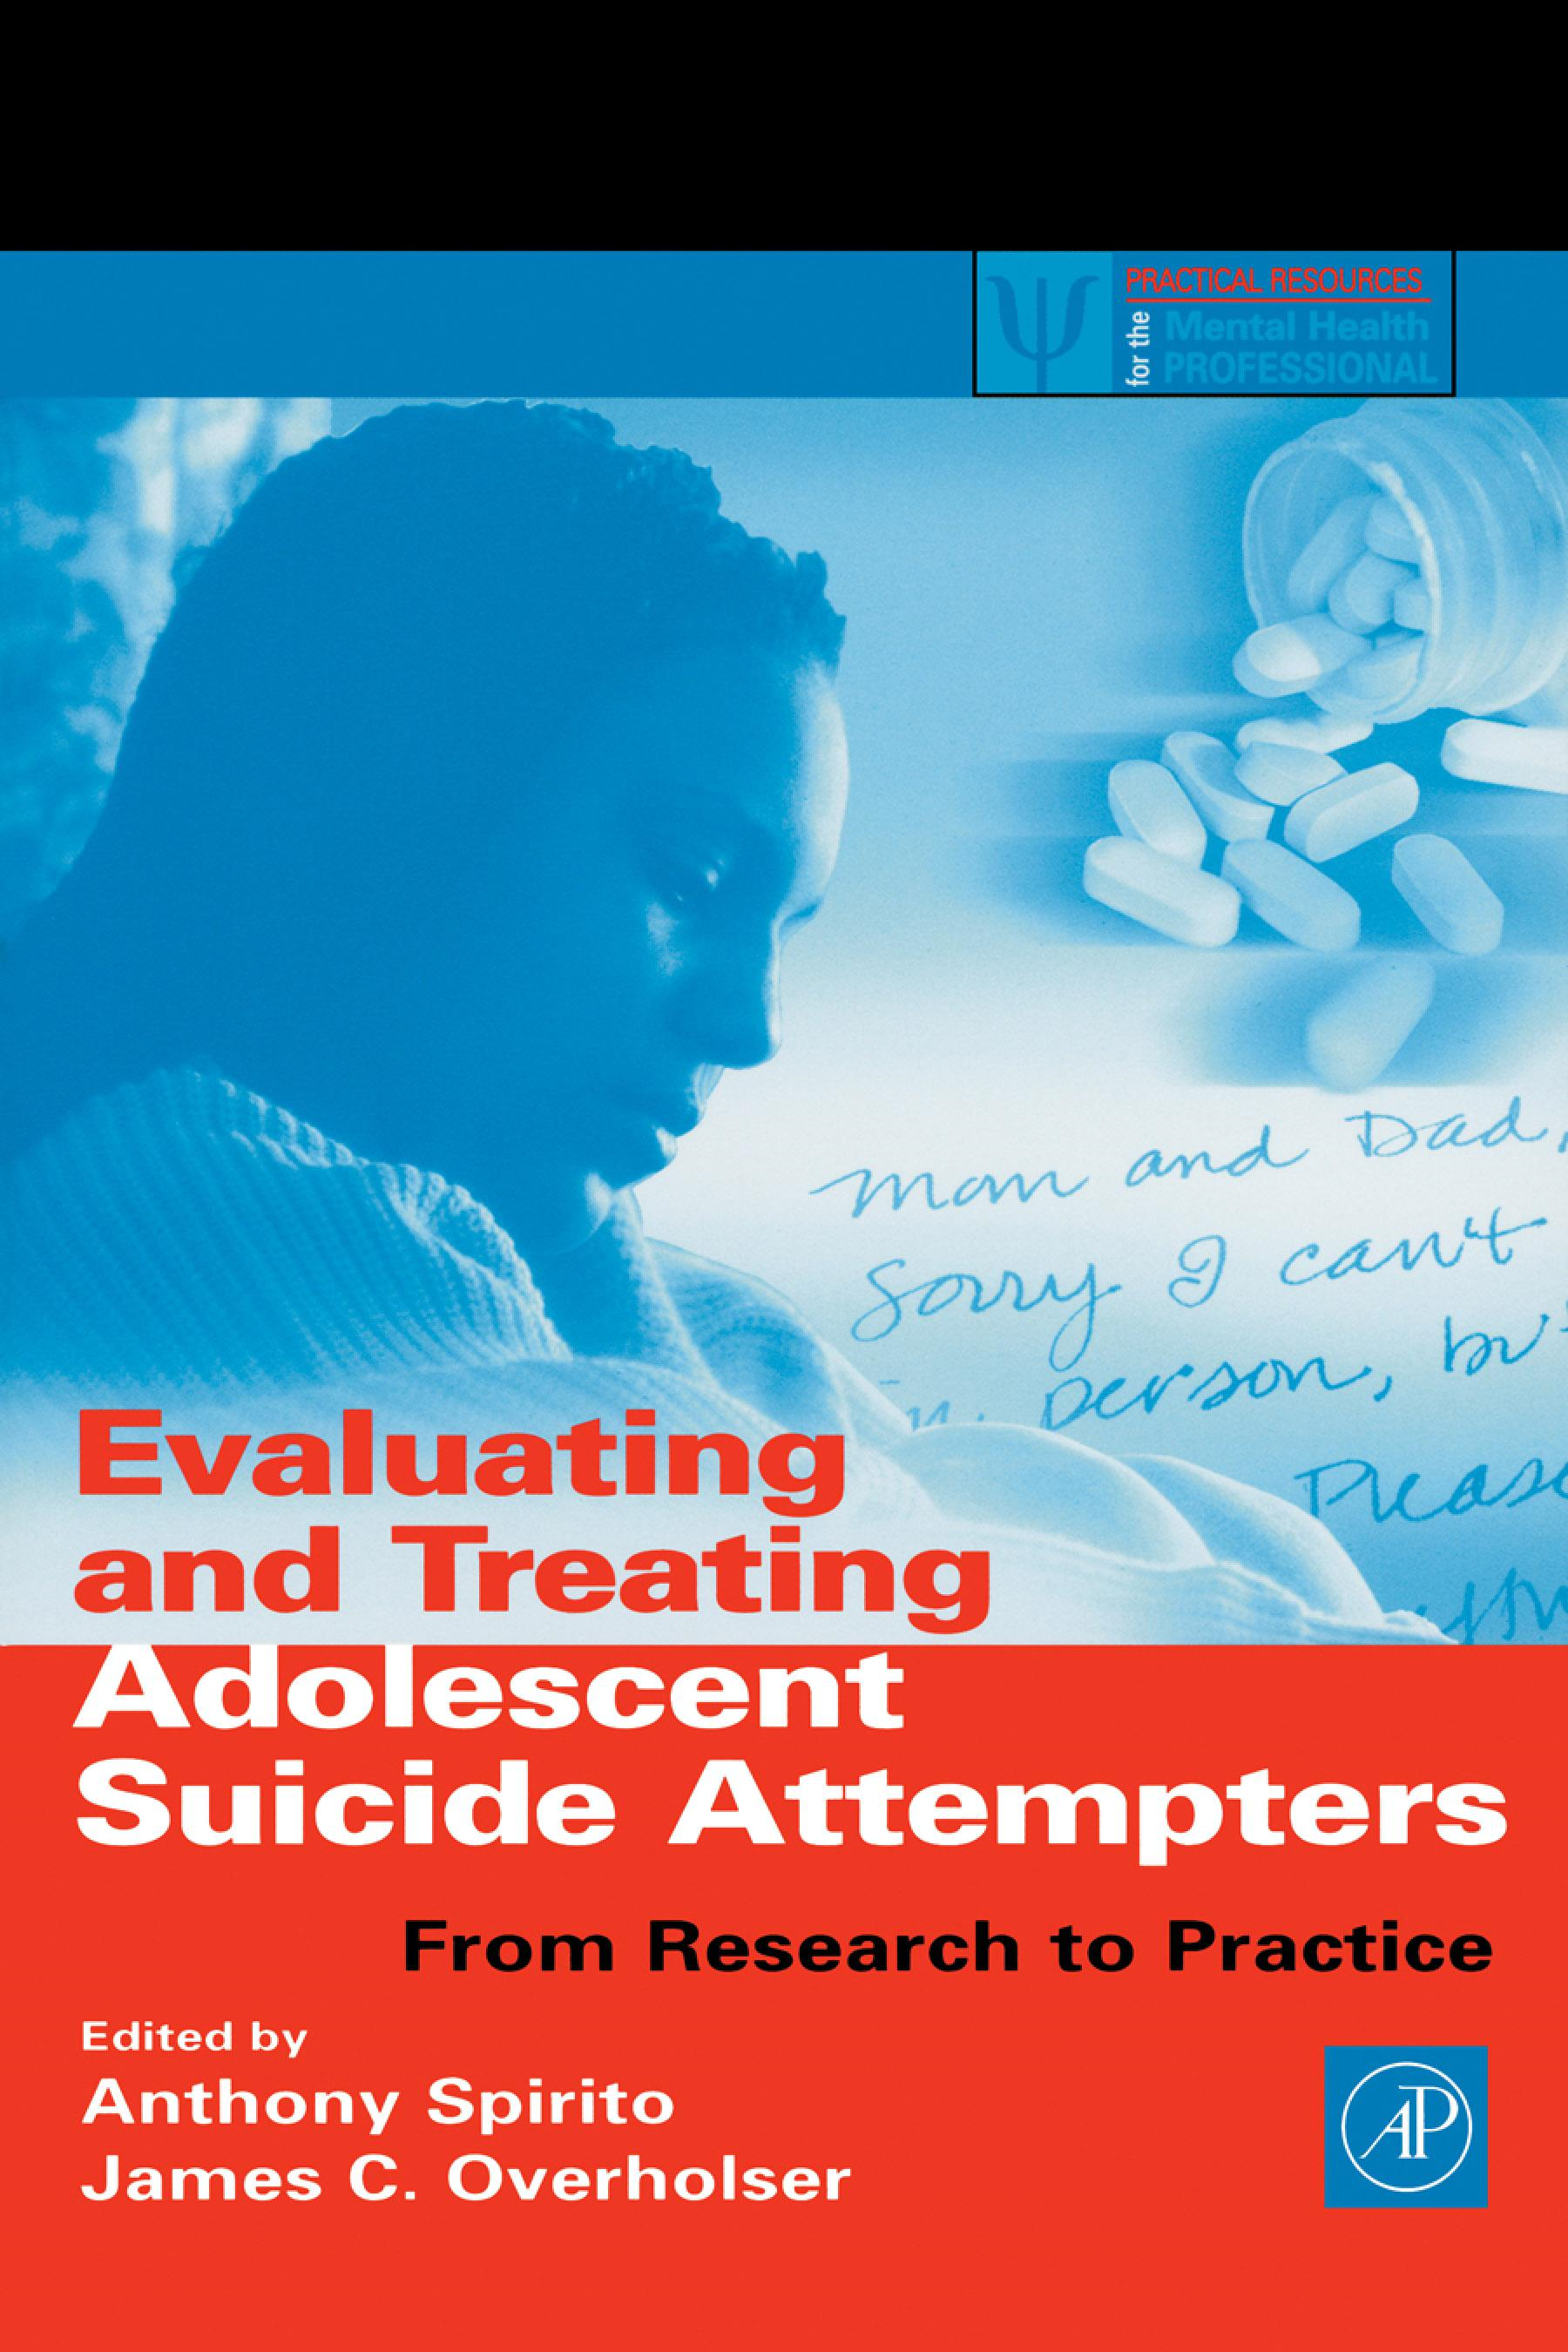 Evaluating and Treating Adolescent Suicide Attempters: From Research to Practice By: Spirito, Anthony